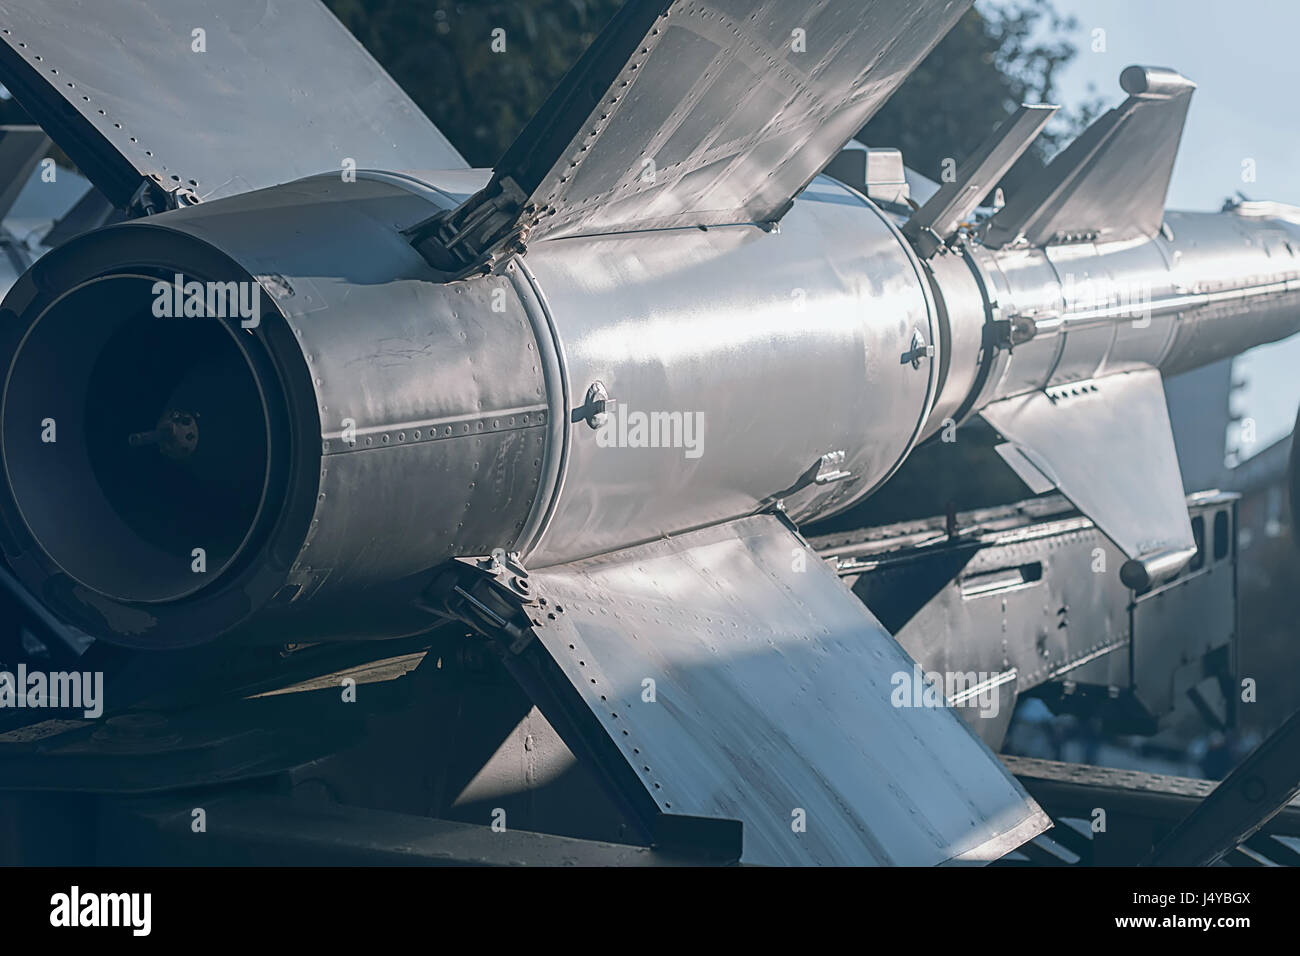 Ballistic Rocket. Nuclear Missile With Warhead. War Backgound. - Stock Image